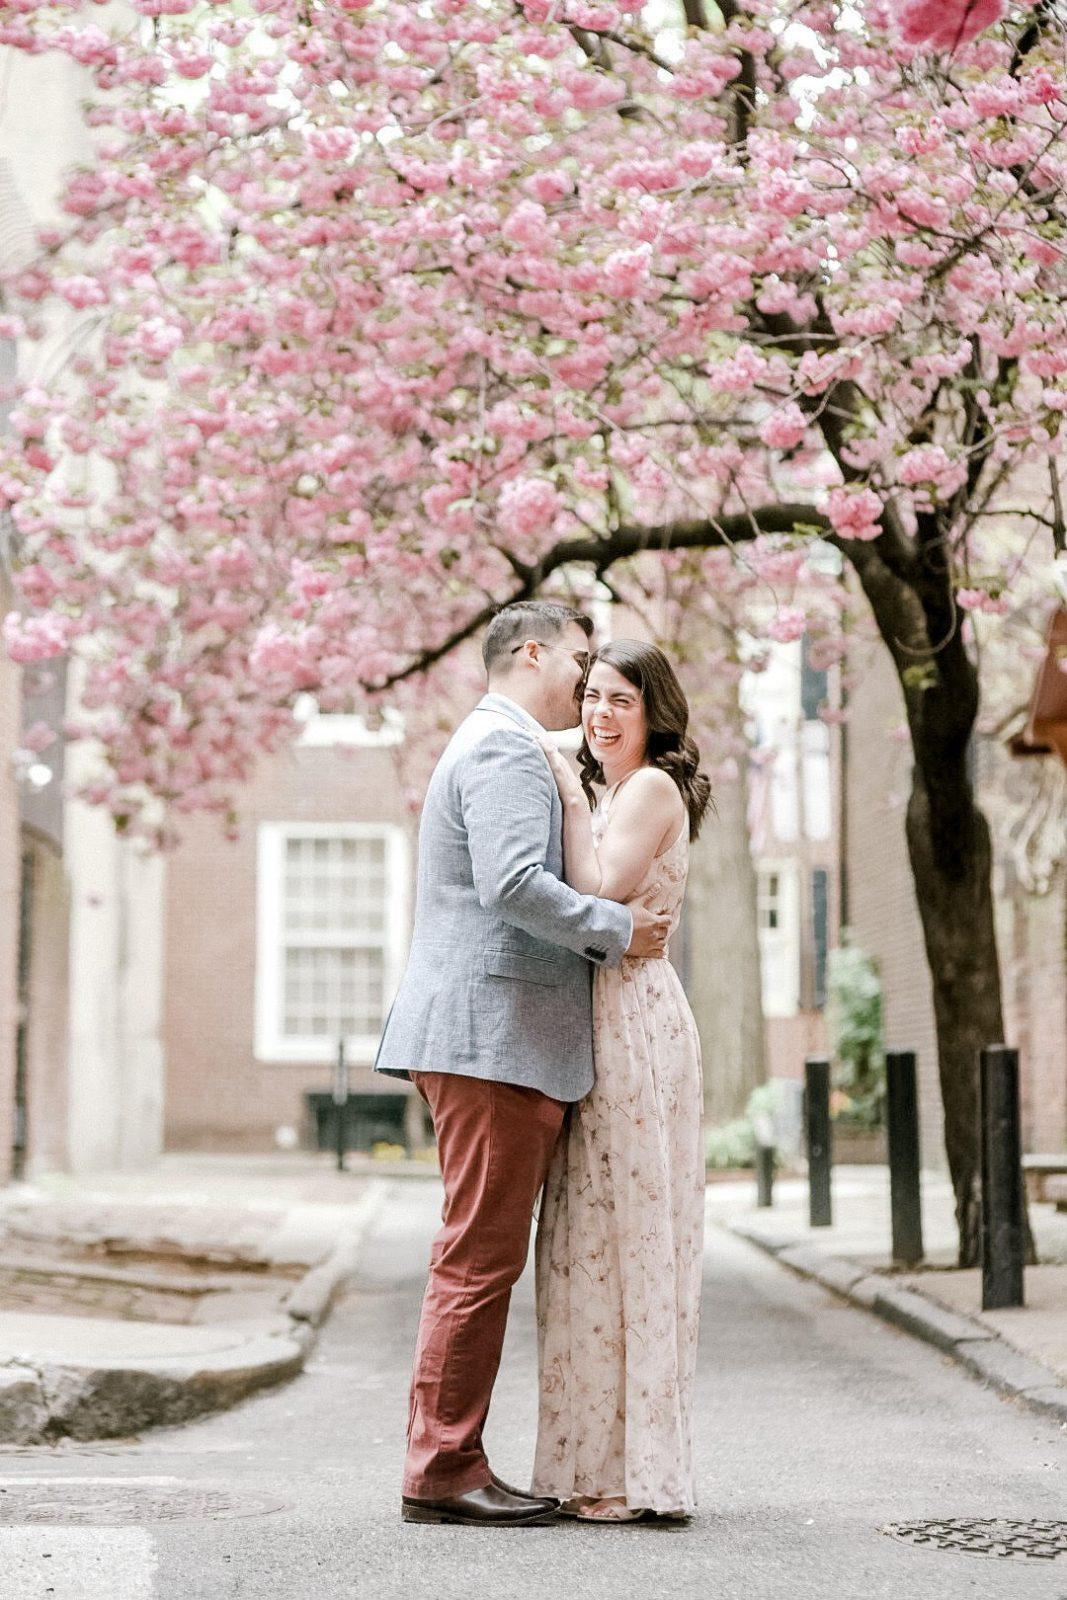 Cherry blossom engagement photo in Philadelphia by clicke photography.